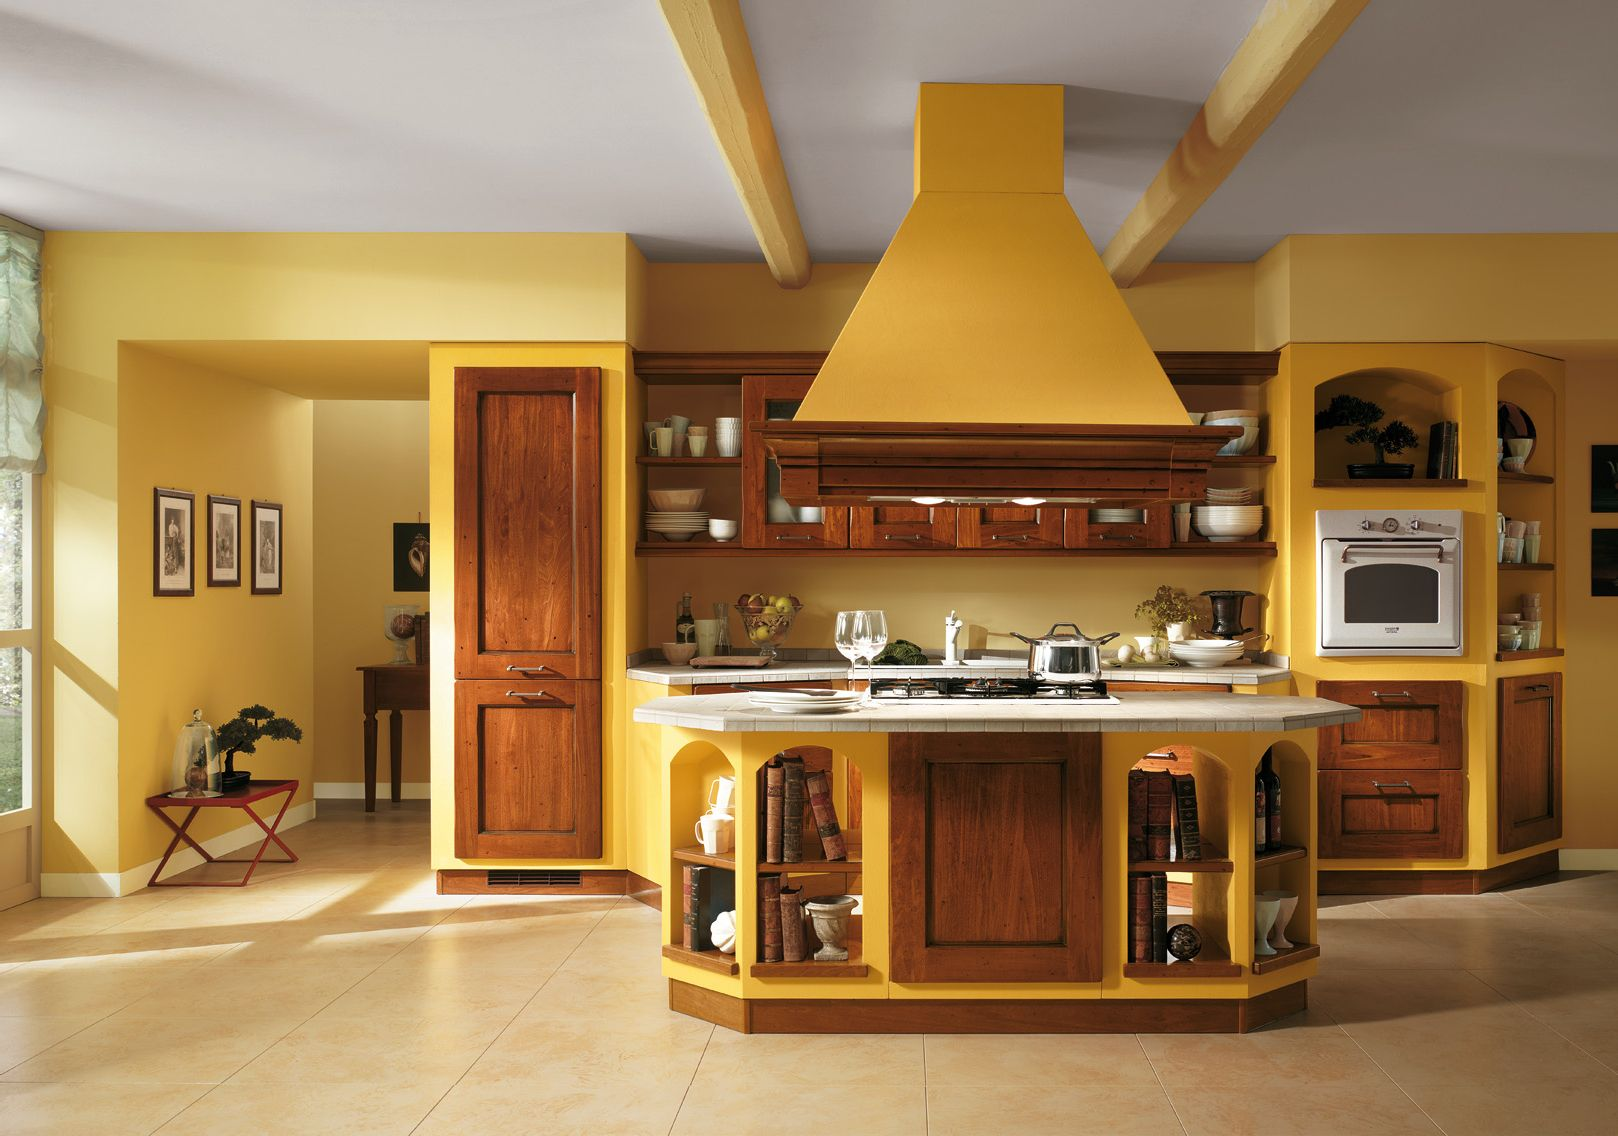 Italian kitchen color schemes for open interior design for Kitchen ideas colors